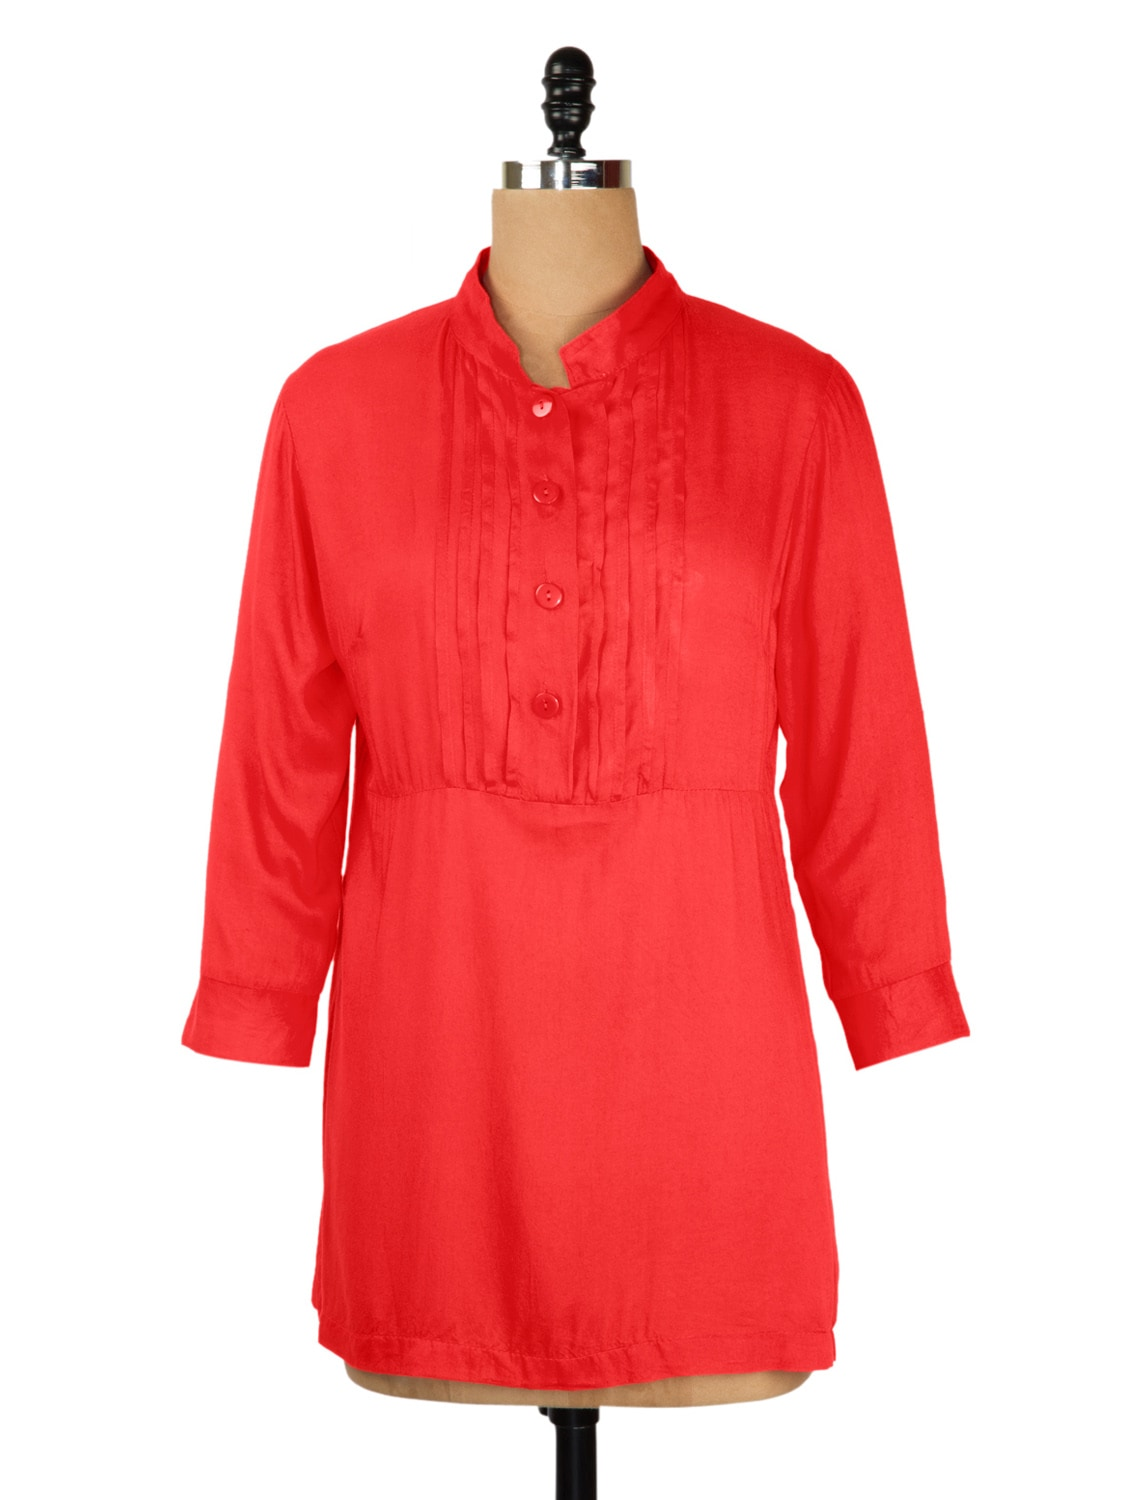 Solid Red Tunic With Sleeves